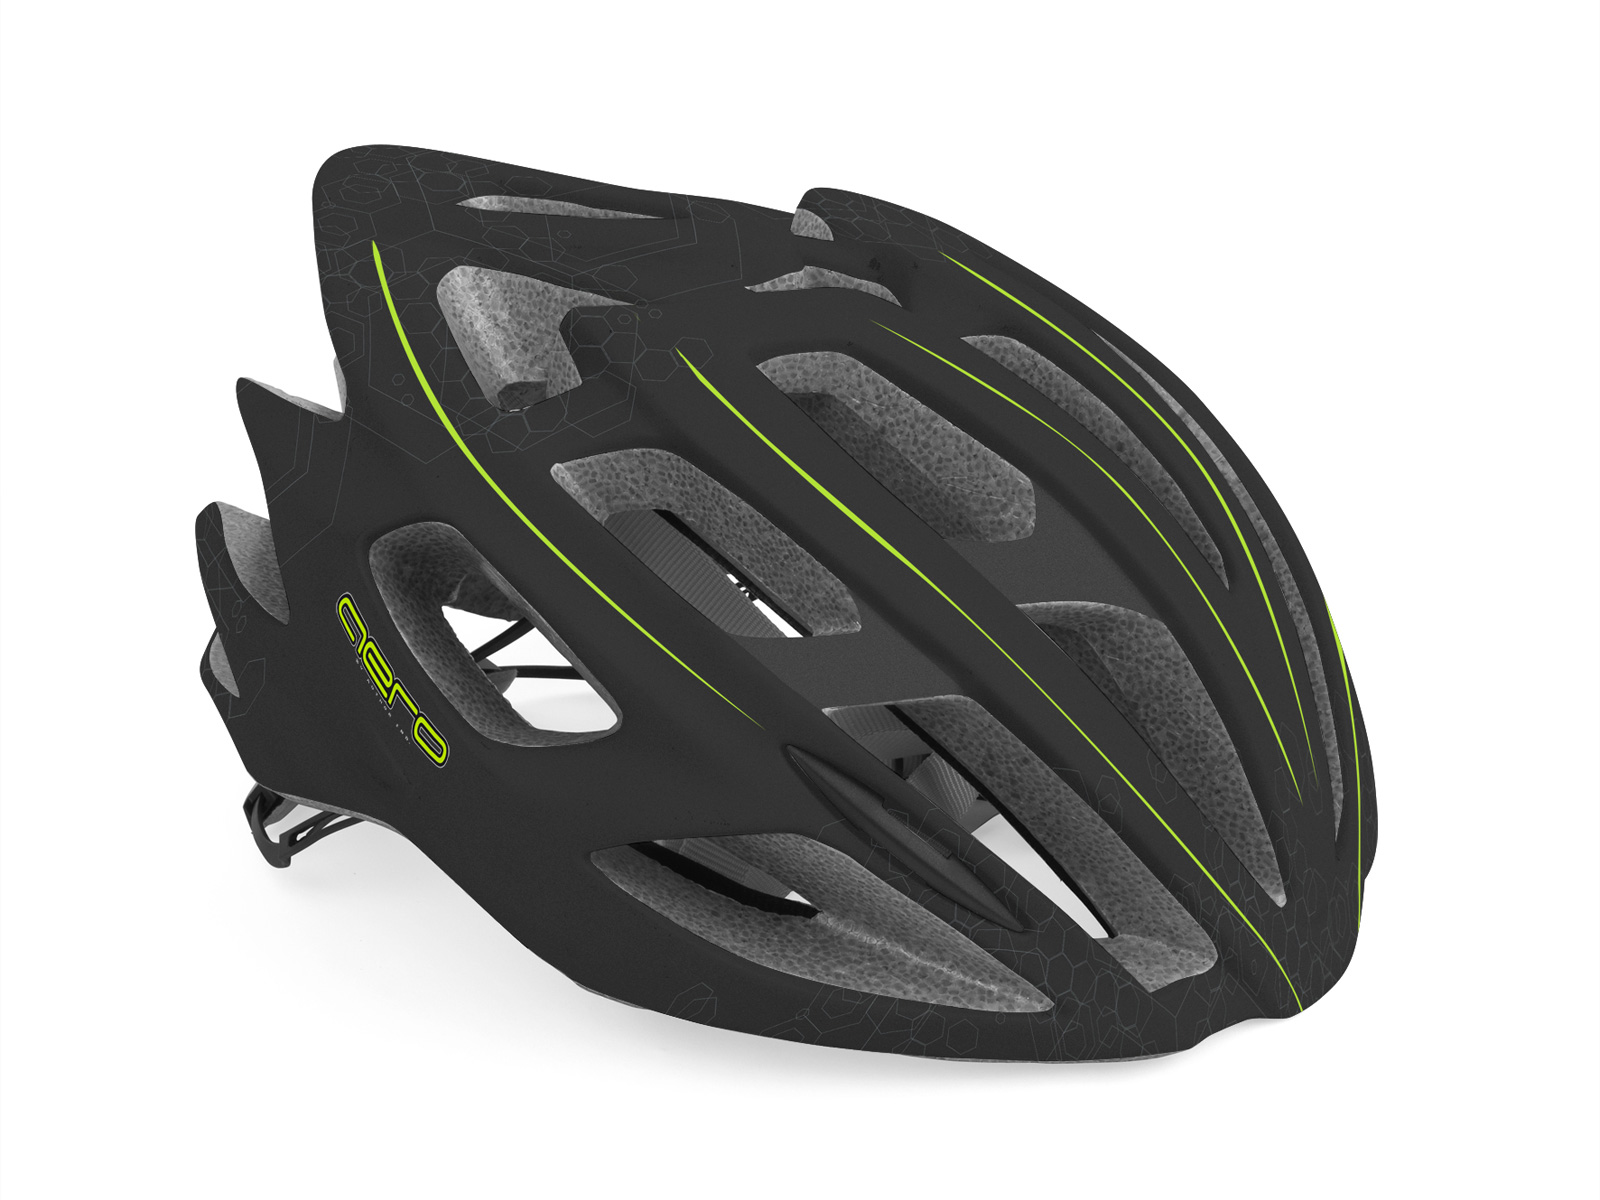 Шлем AERO InMold X7 162 BLACK/YELLOW-NEON р-р 52-58см AUTHOR